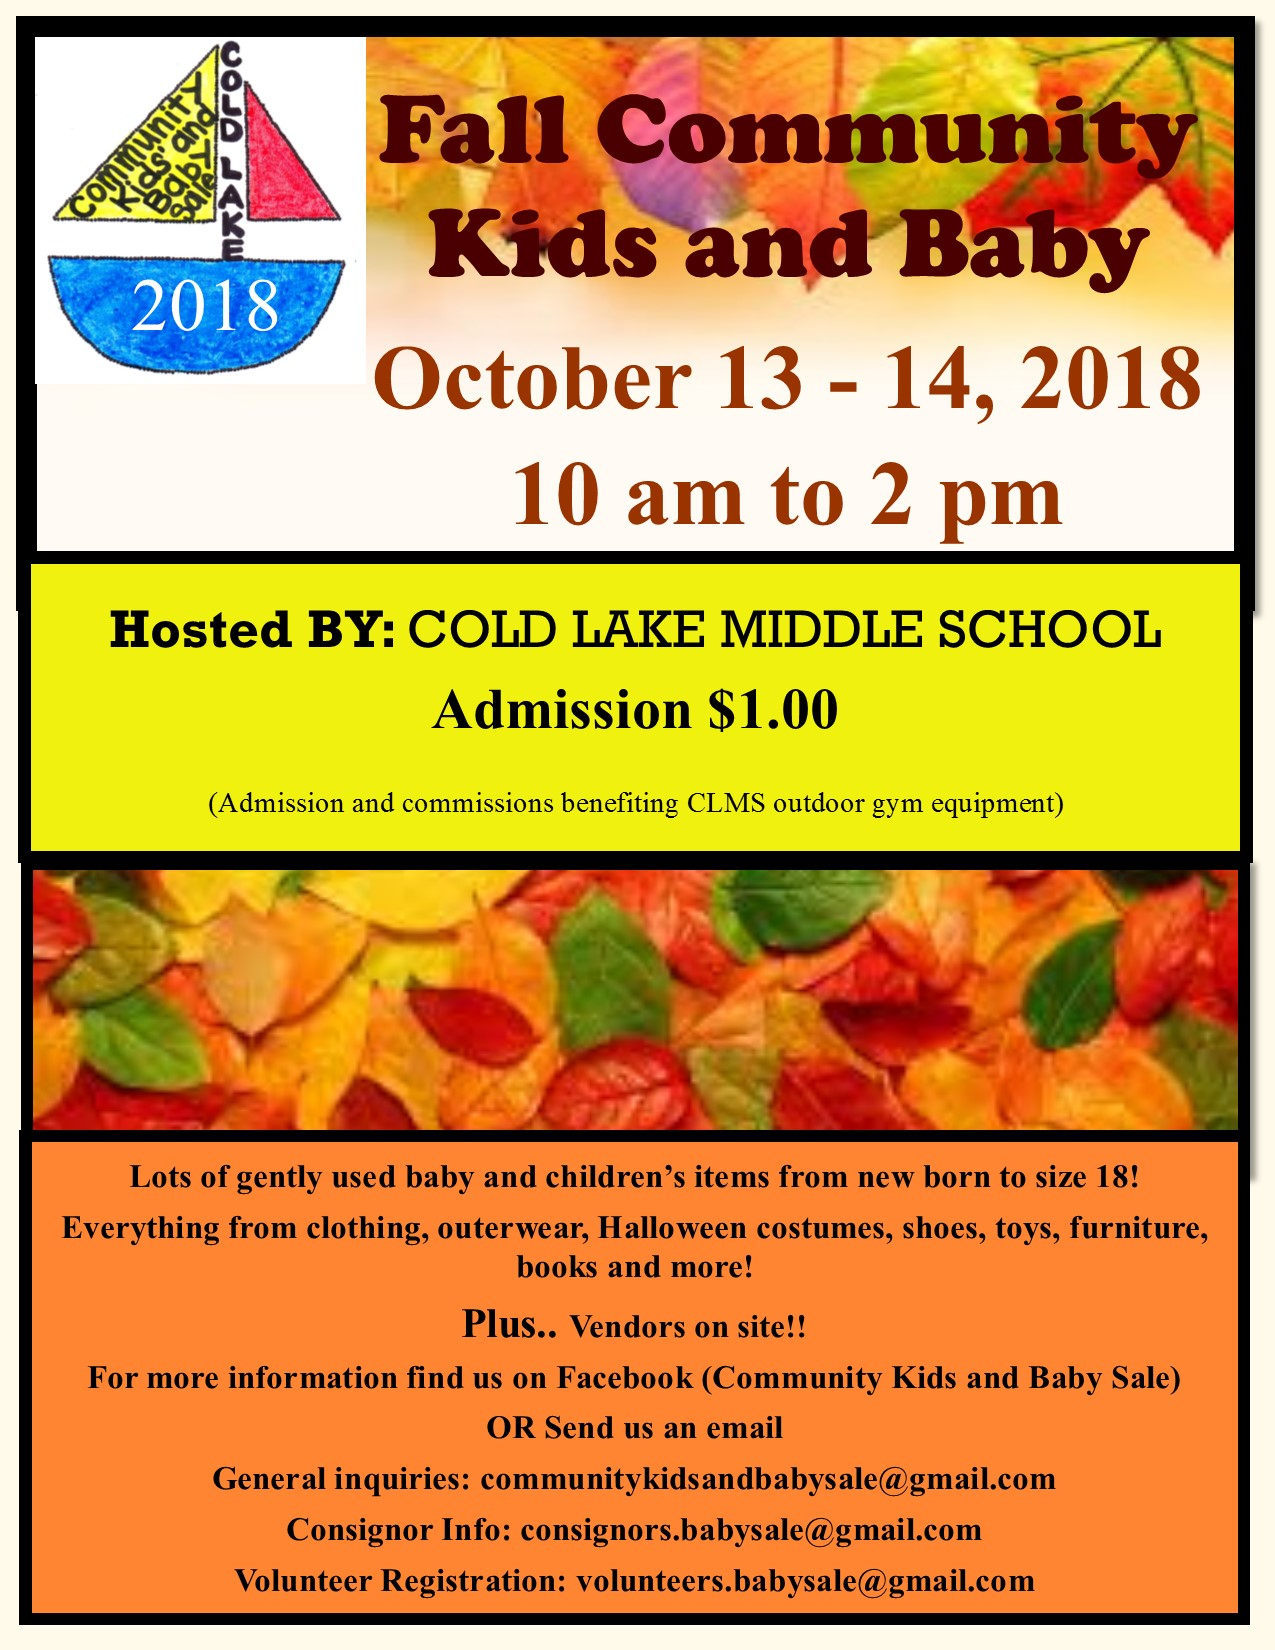 Upcoming fall sale tons of great gently used items of all kinds for baby and kids clothes outerwear footwear furniture books and so much more